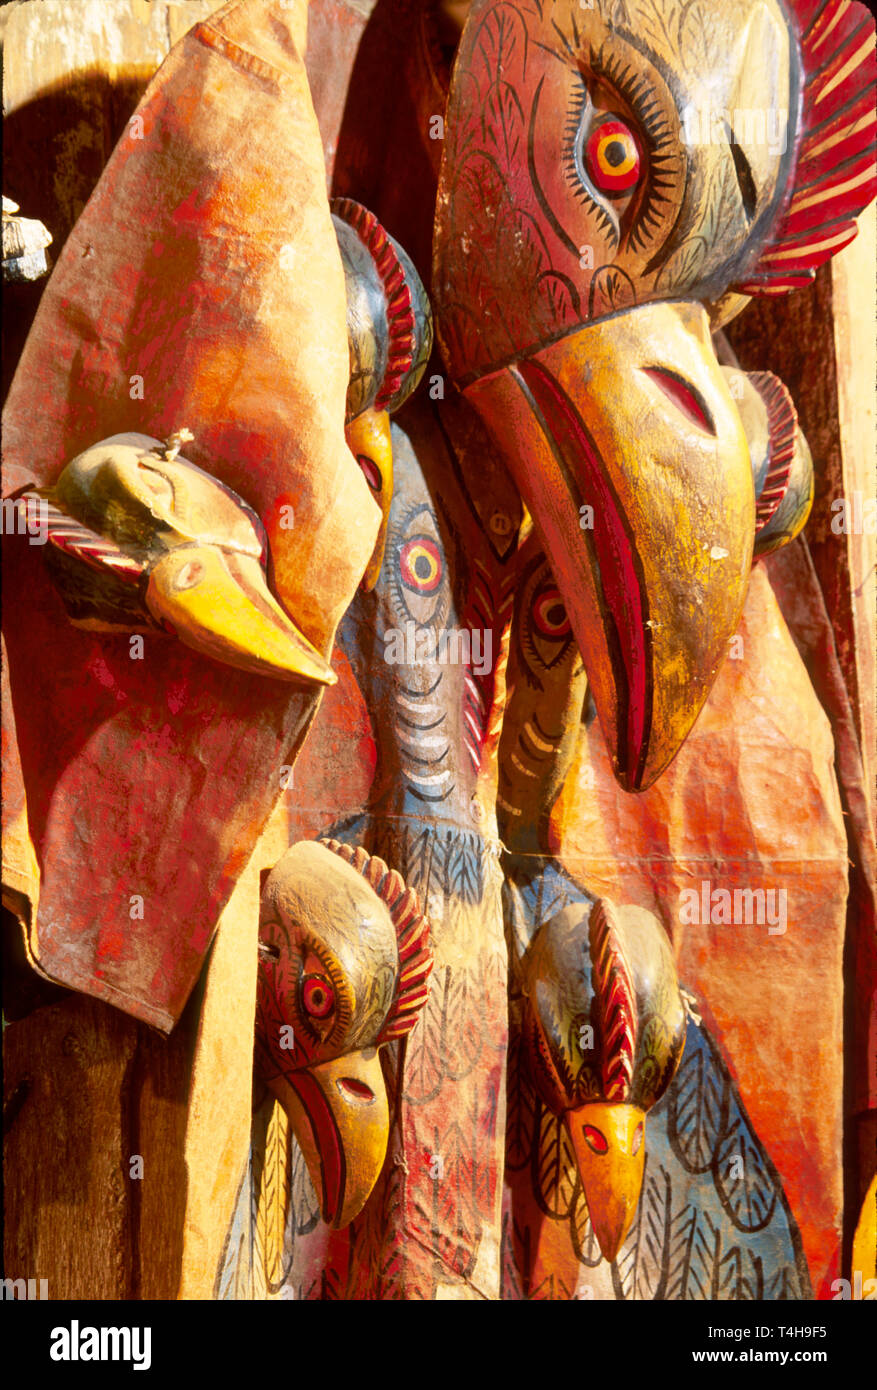 Arizona Scottsdale Shades of gifts Guerra Native Mexico Tribe regalia for sale - Stock Image